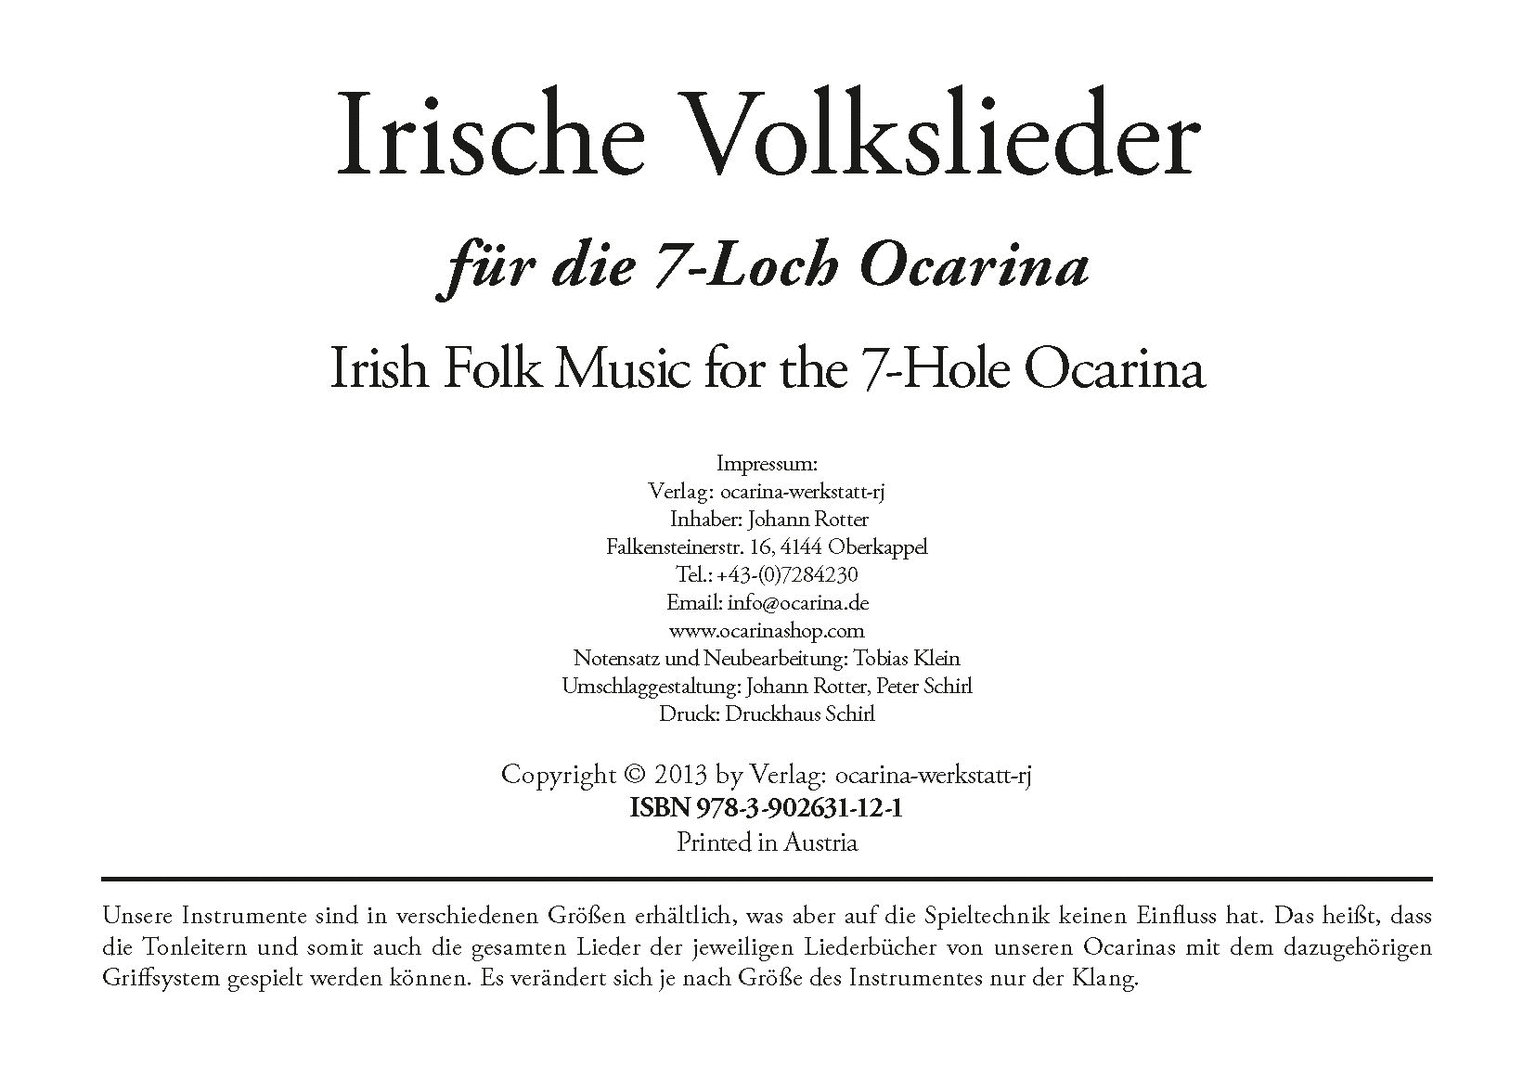 Irische Volkslieder 7 Hole (Irish Folk Music) - Ocarina Musikhaus